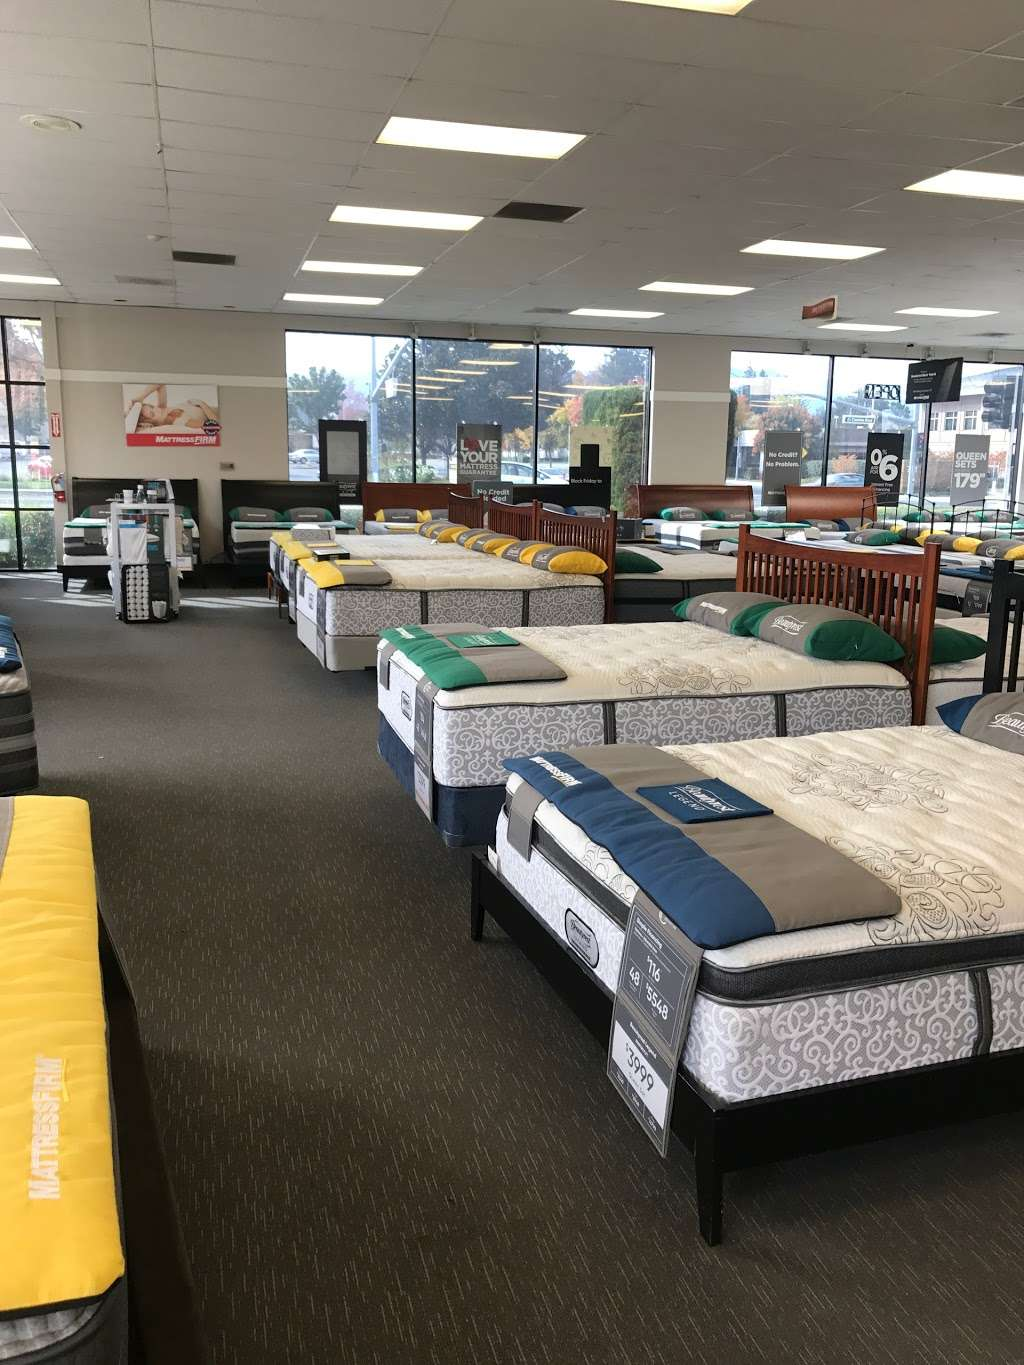 Mattress Firm Mountain View - furniture store  | Photo 7 of 10 | Address: 804 E El Camino Real, Mountain View, CA 94040, USA | Phone: (650) 694-7339